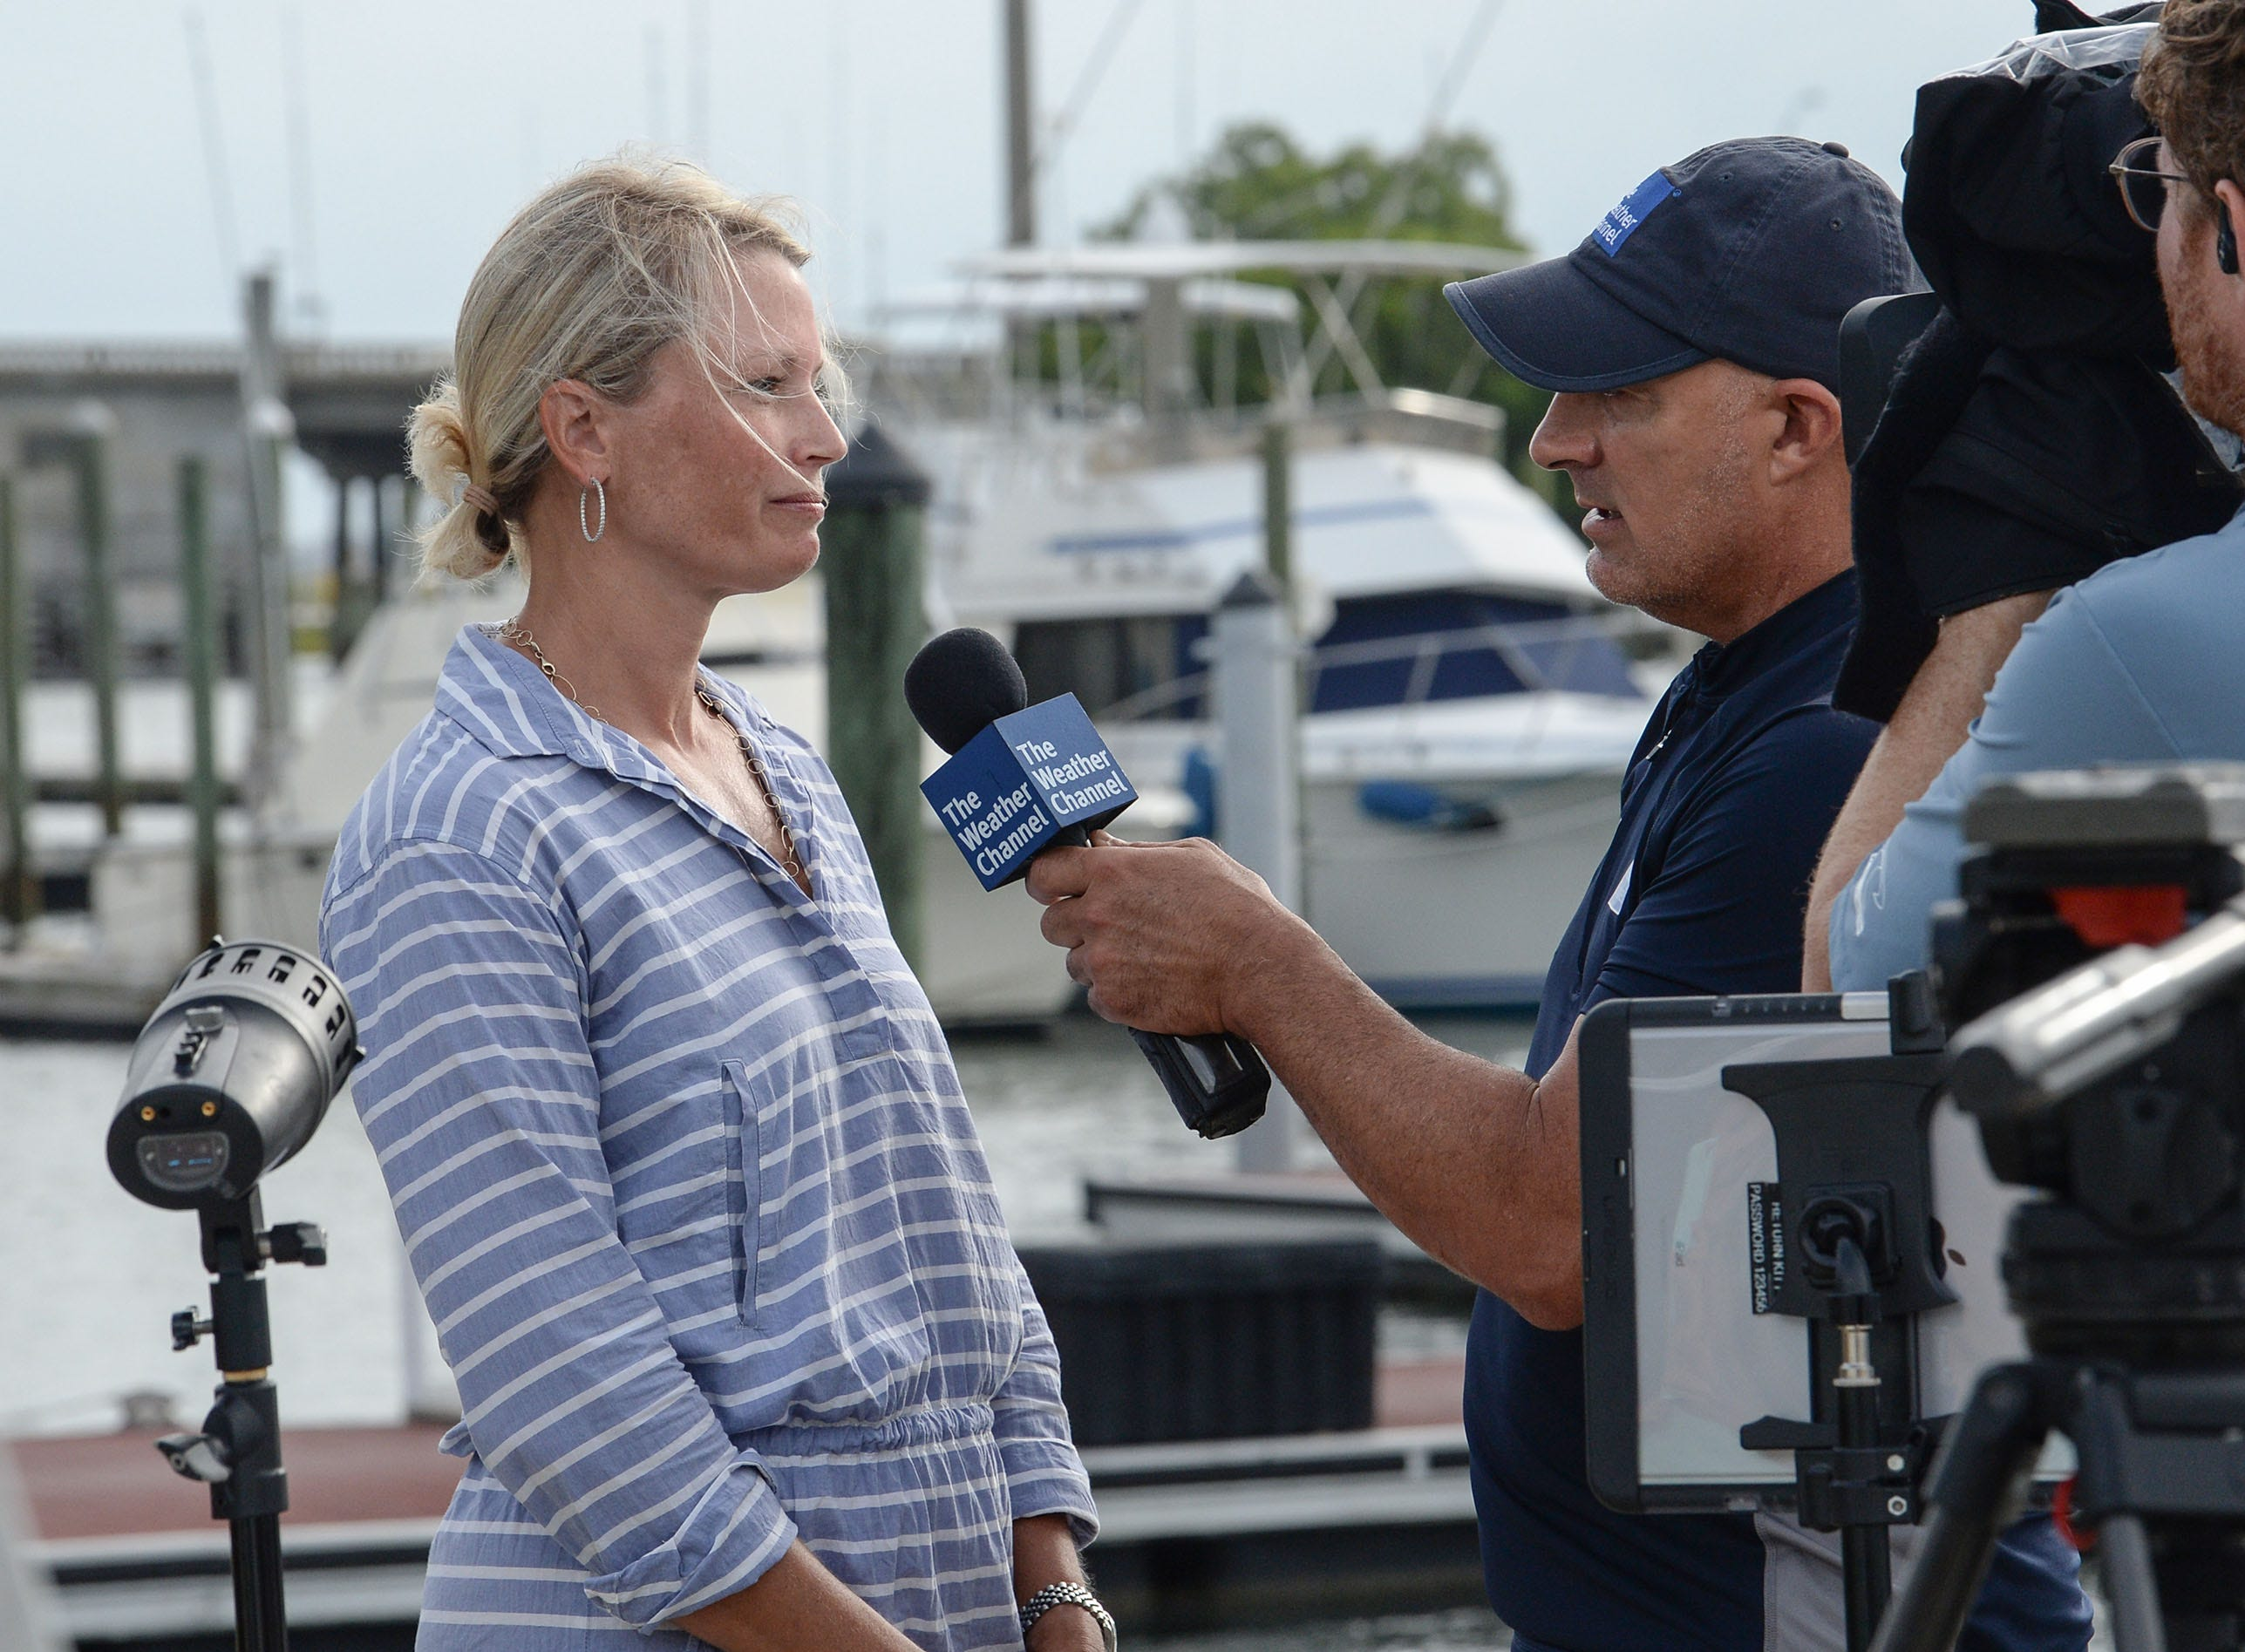 Amy Neathery of Wilmington, N.C. is interviewed by Jim Cantore, before Hurricane Florence in Wilmington, North Carolina on Thursday, September 13, 2018. (Ken Ruinard / Greenville News / Gannett USA Today Network / 2018 )